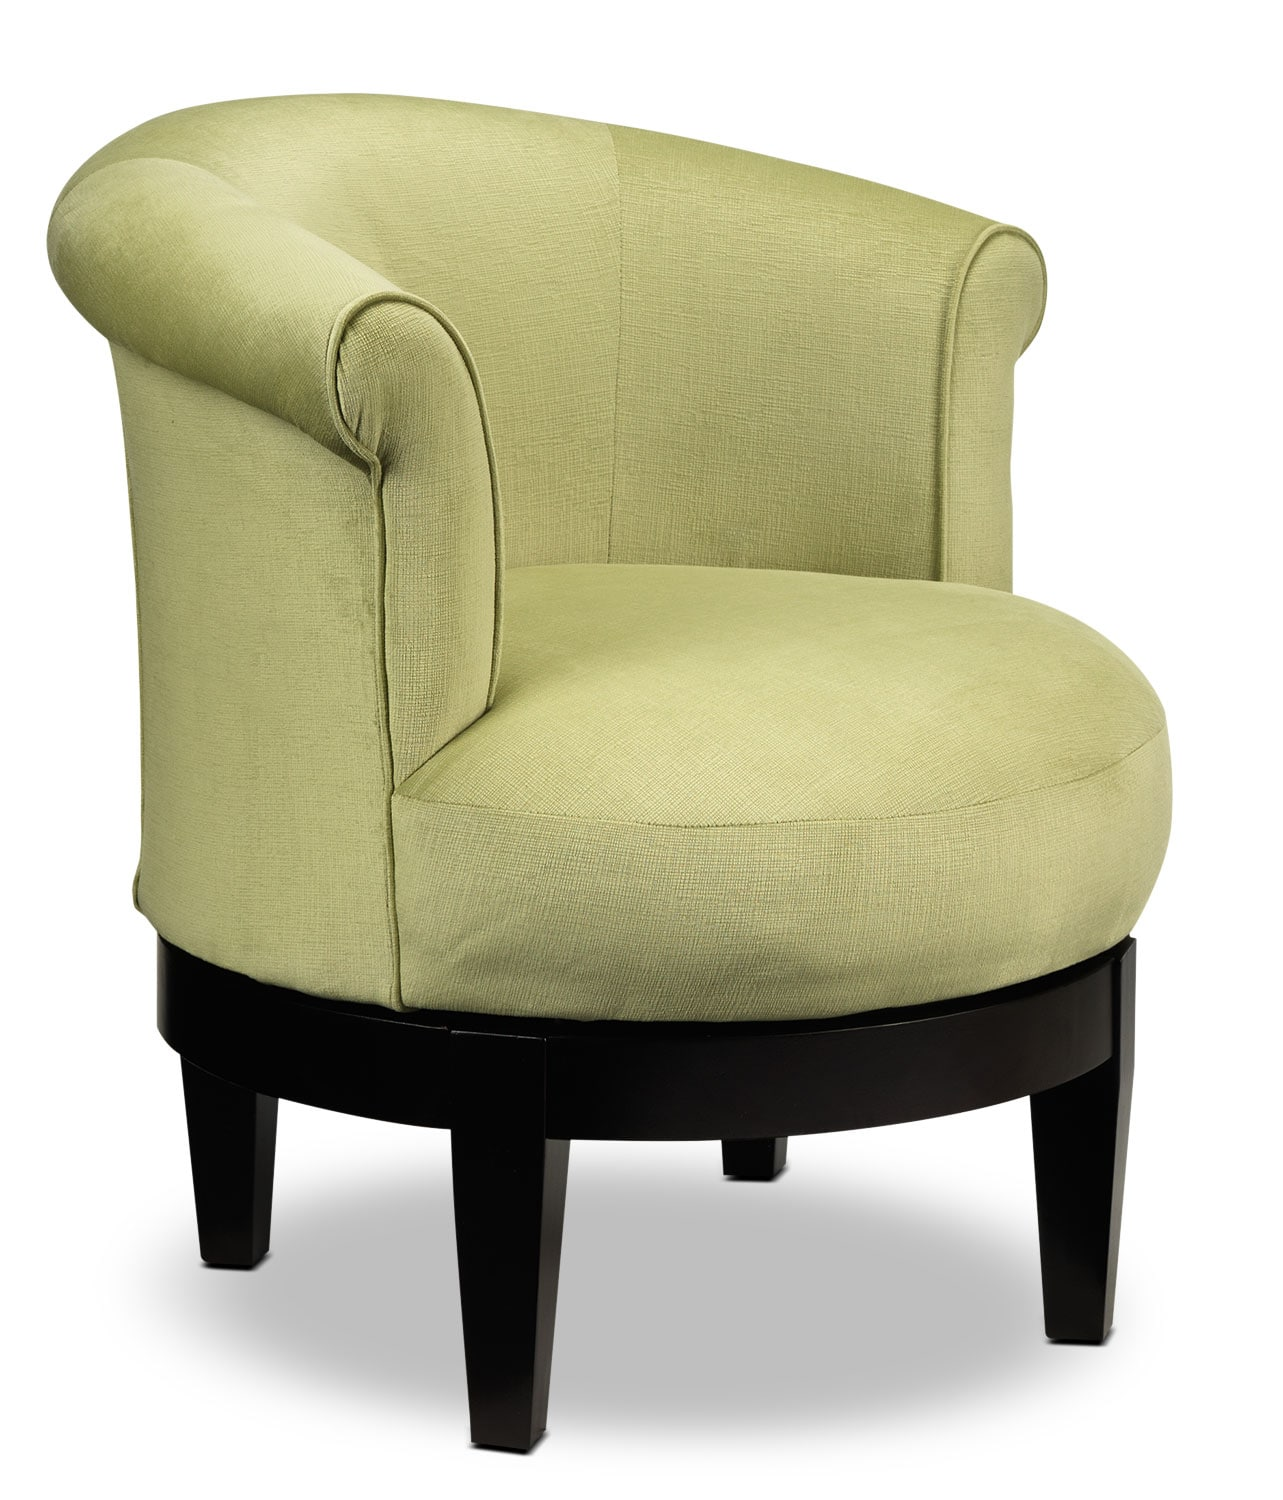 Living Room Furniture - Attica Accent Swivel Chair - Lime